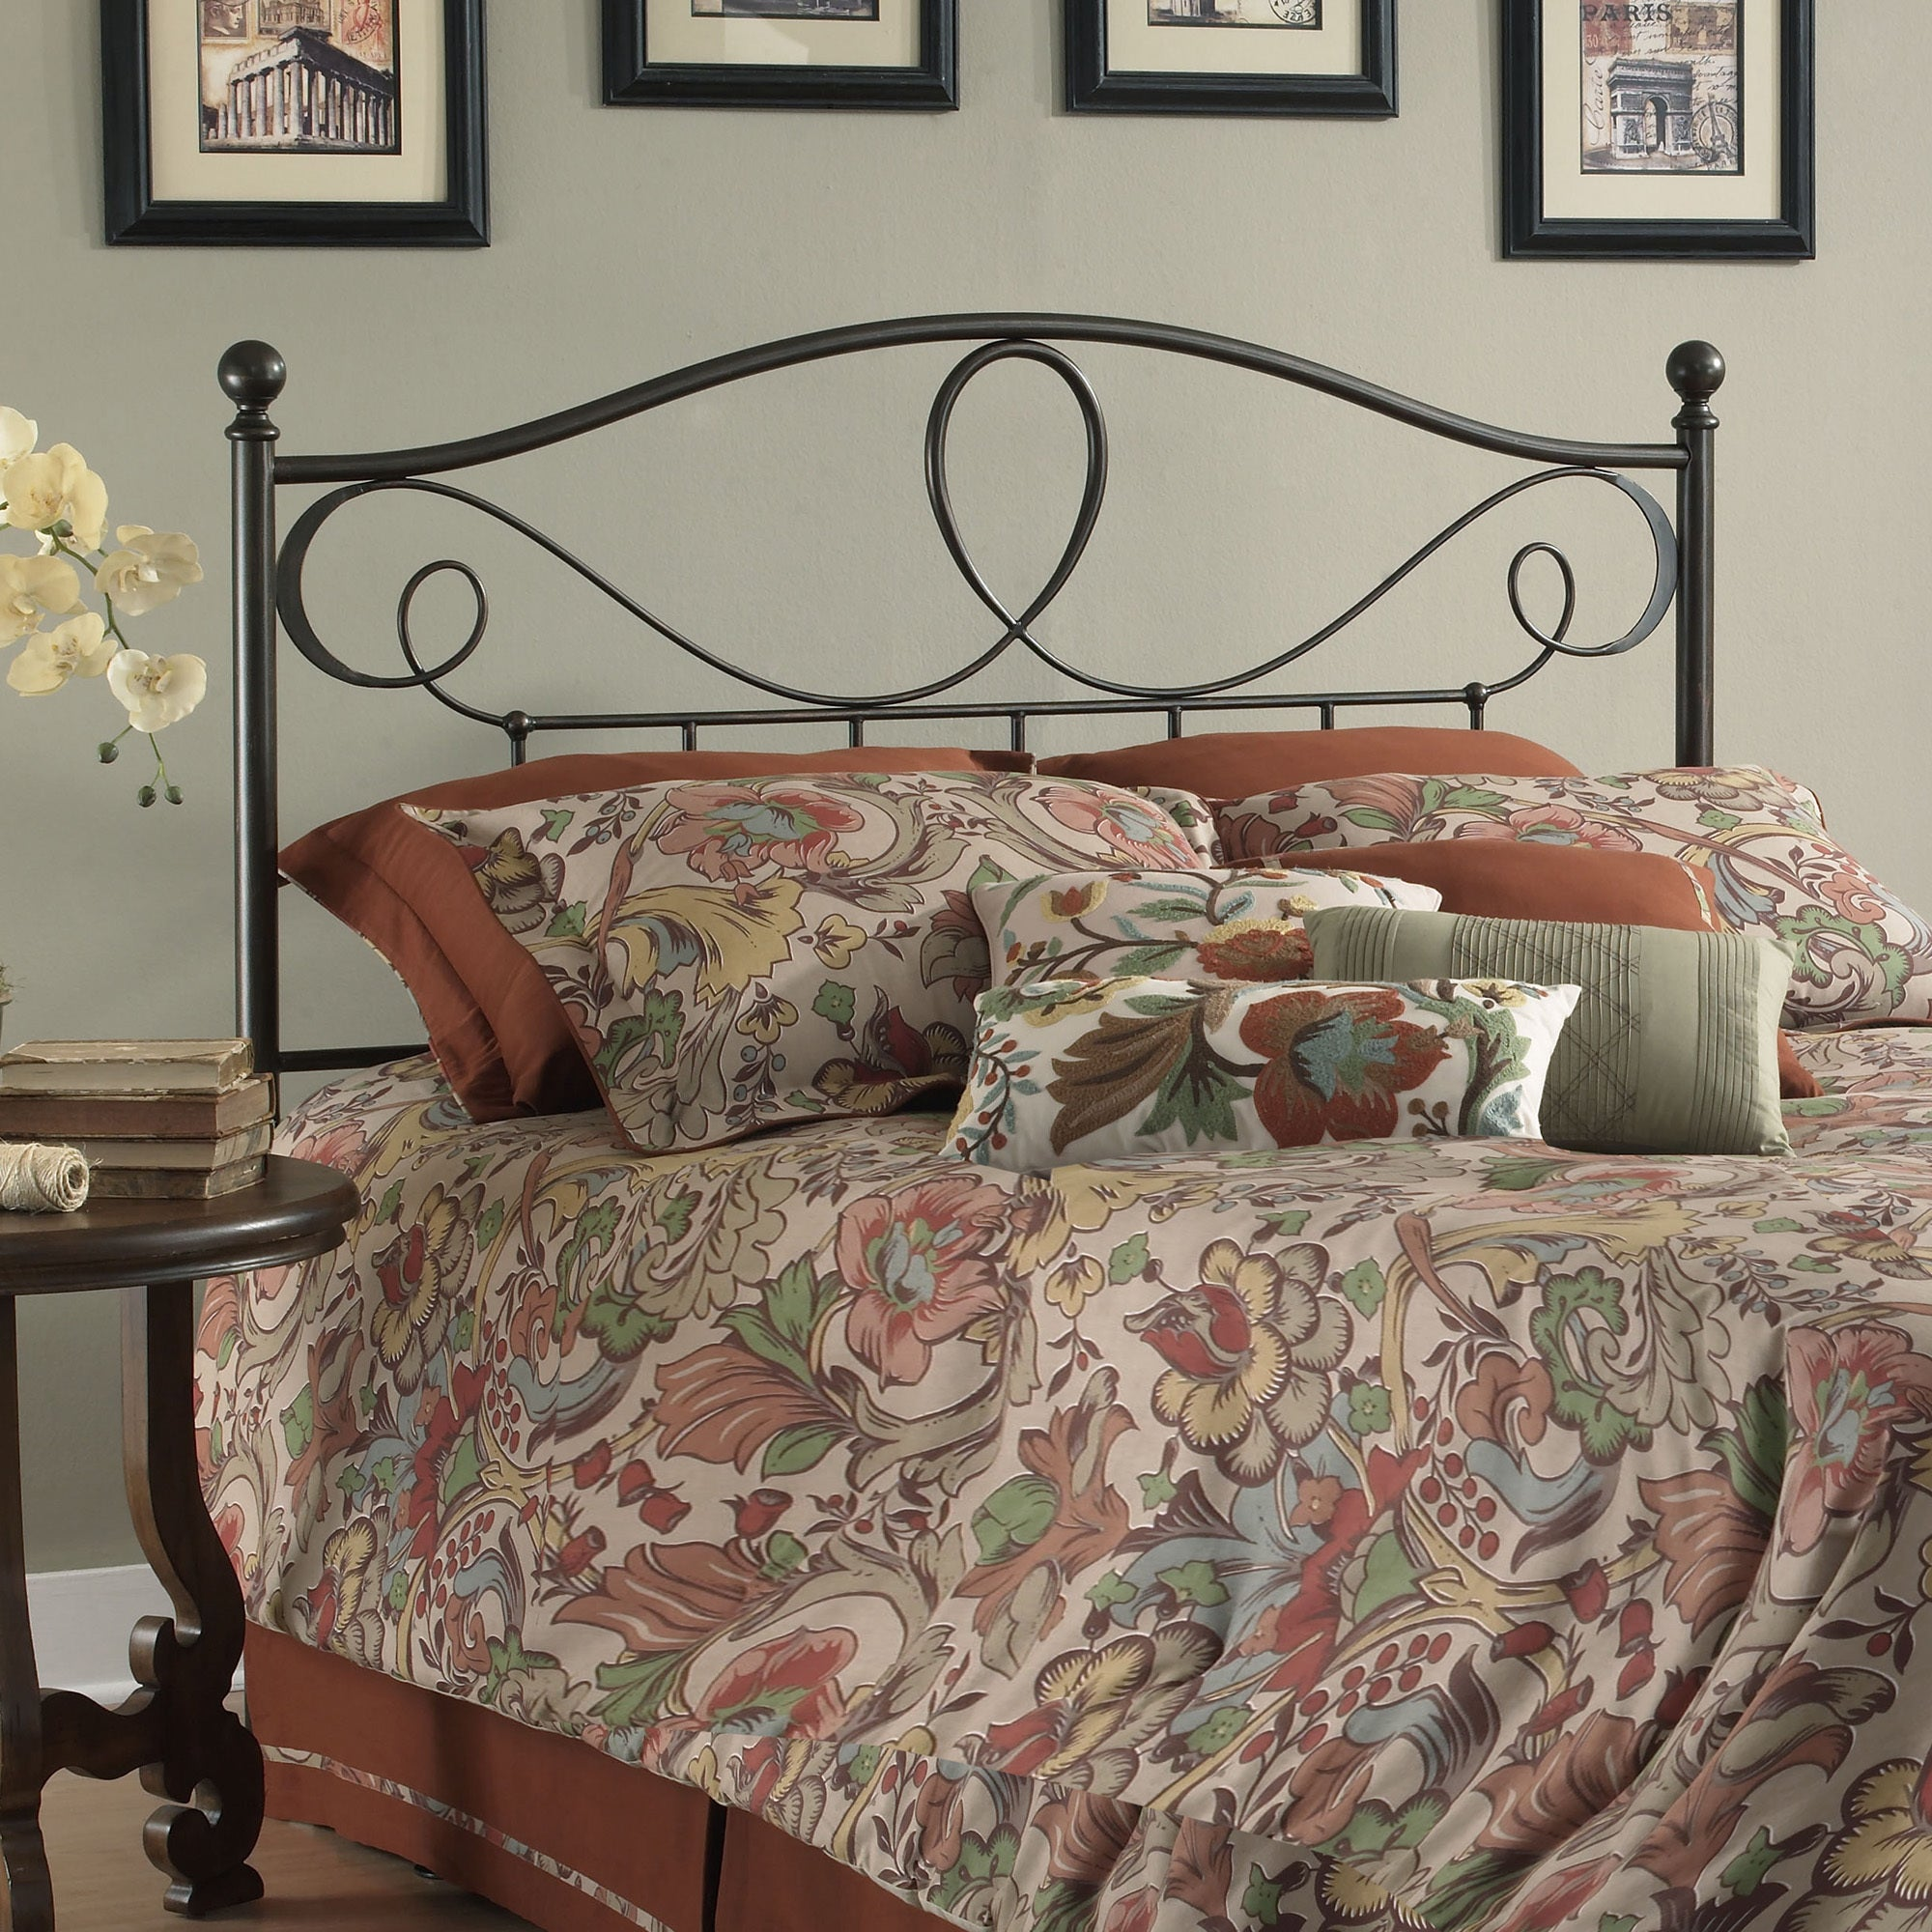 Fashion Bed Group Sylvania Metal Headboard with Curved Gr...